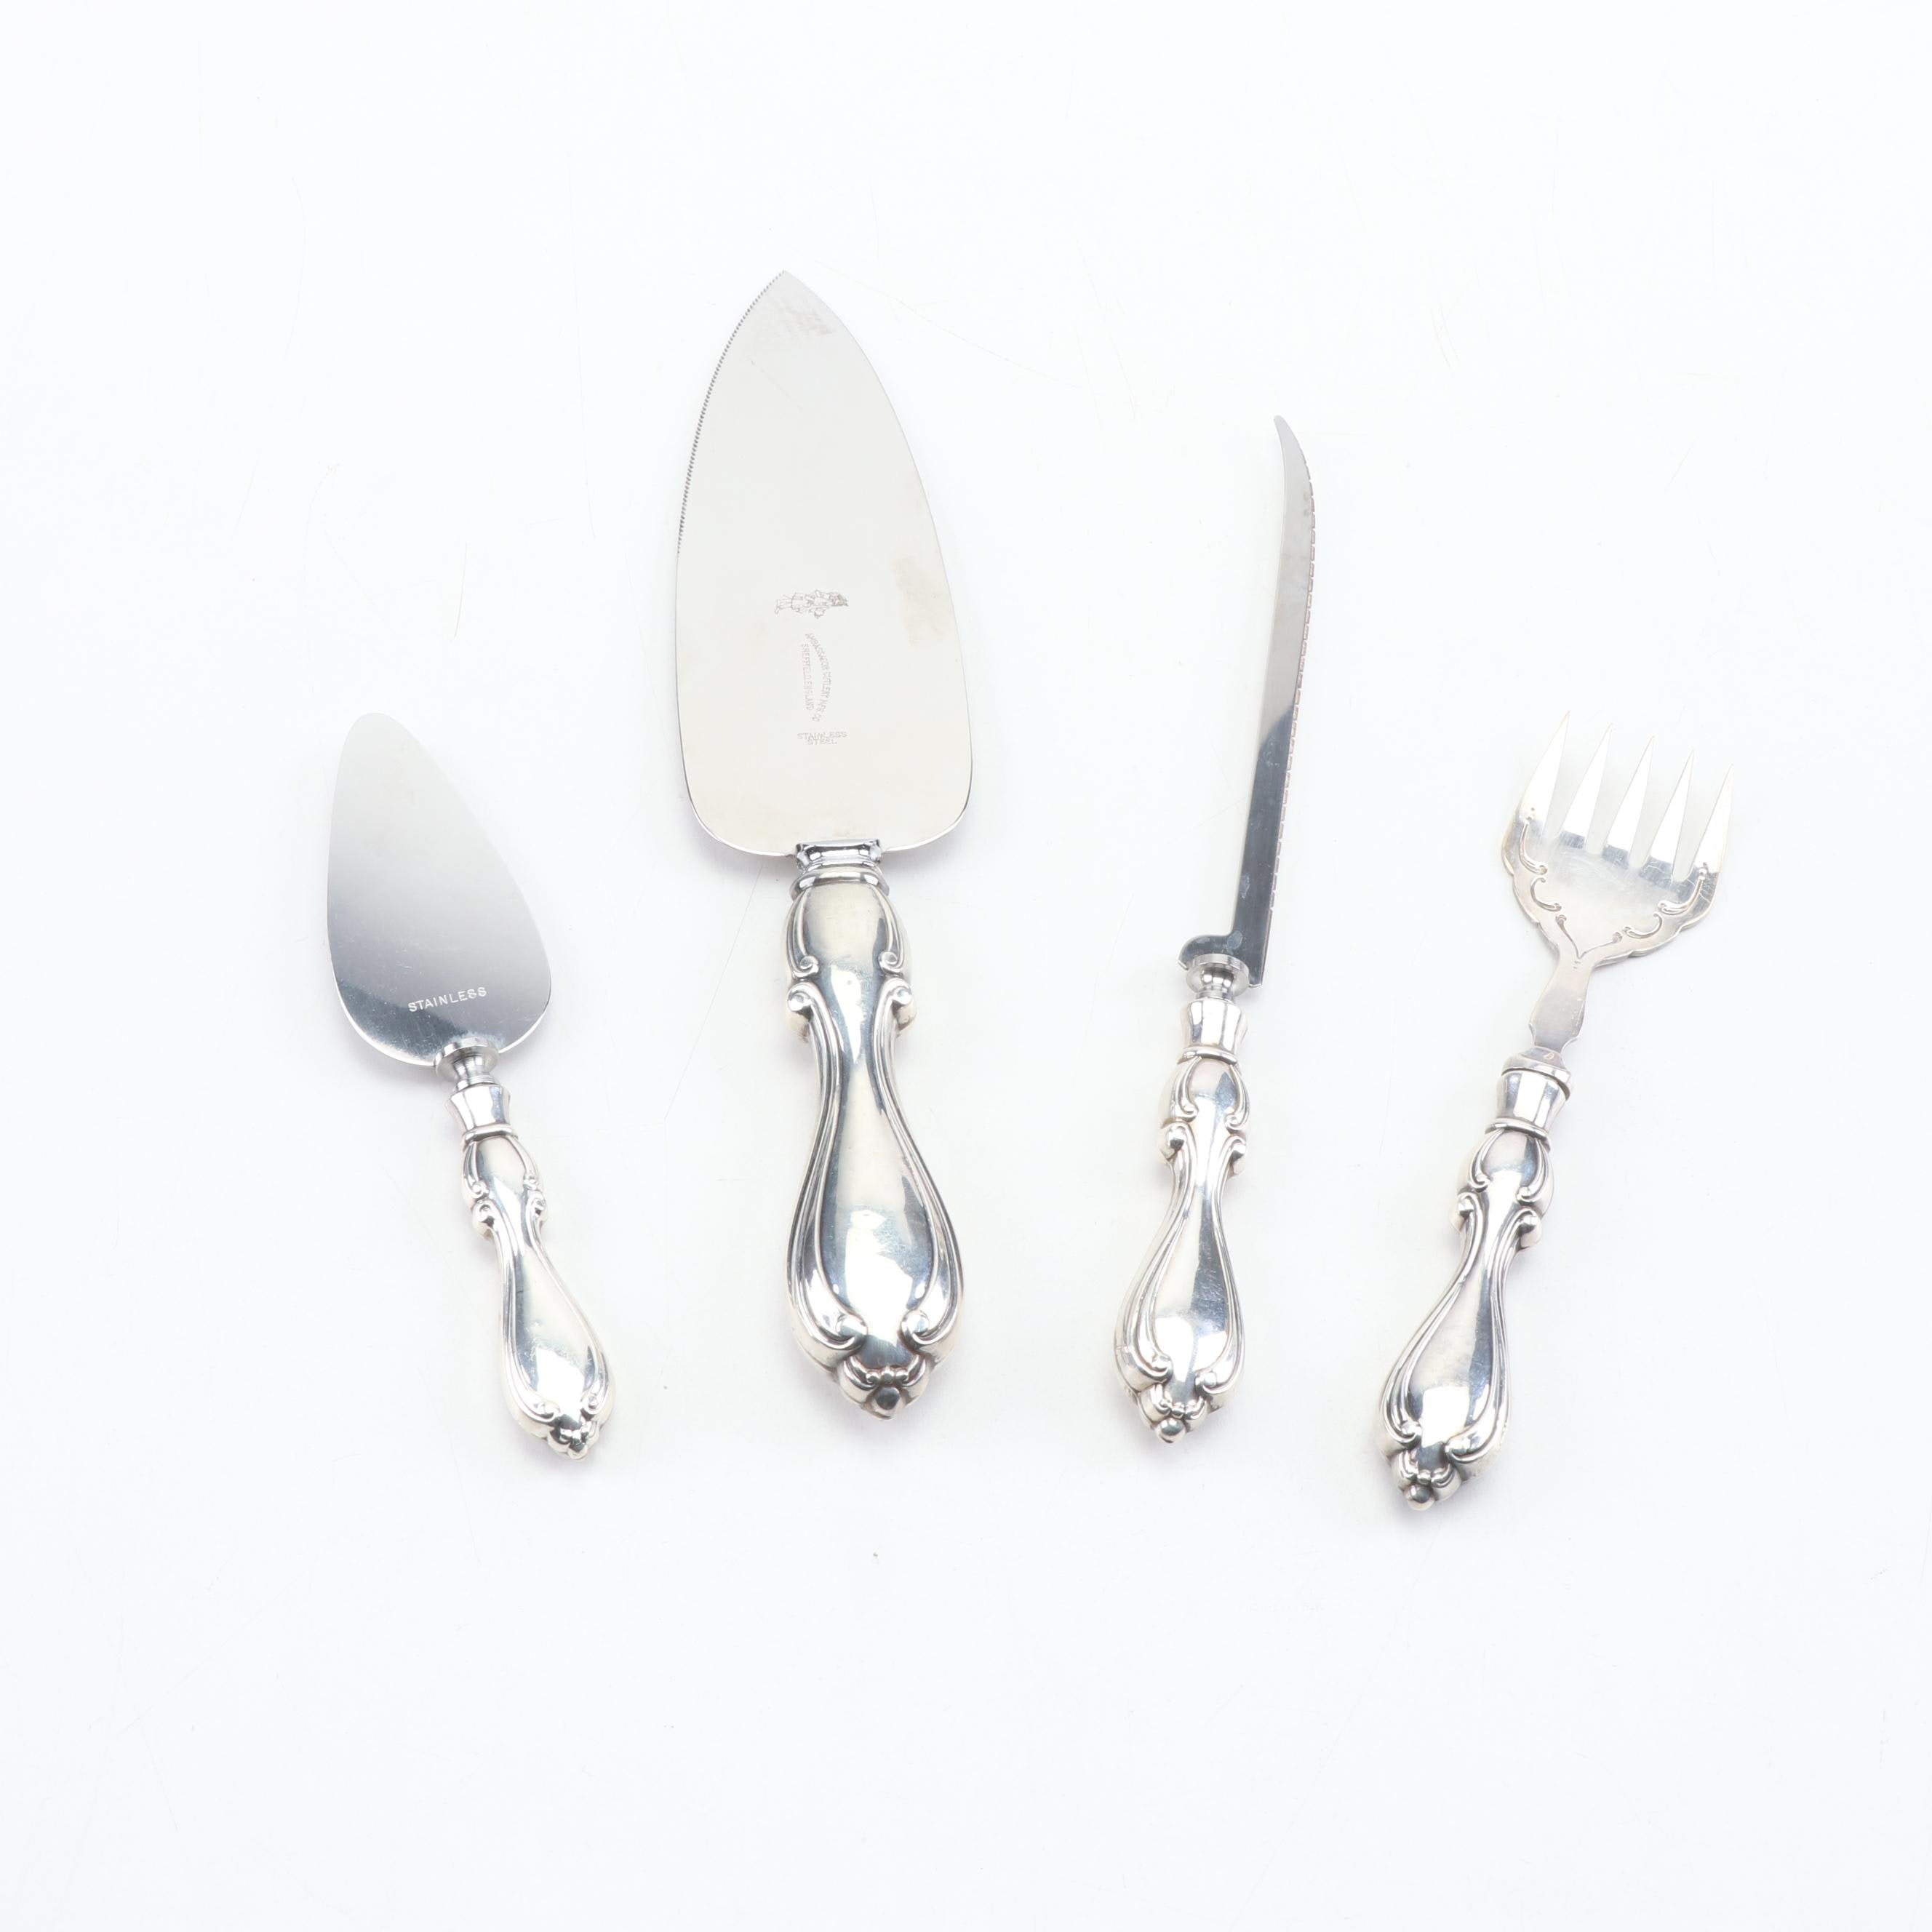 Ambassador Cutlery Mfg. Co. Sterling Silver Handled Serving Utensils